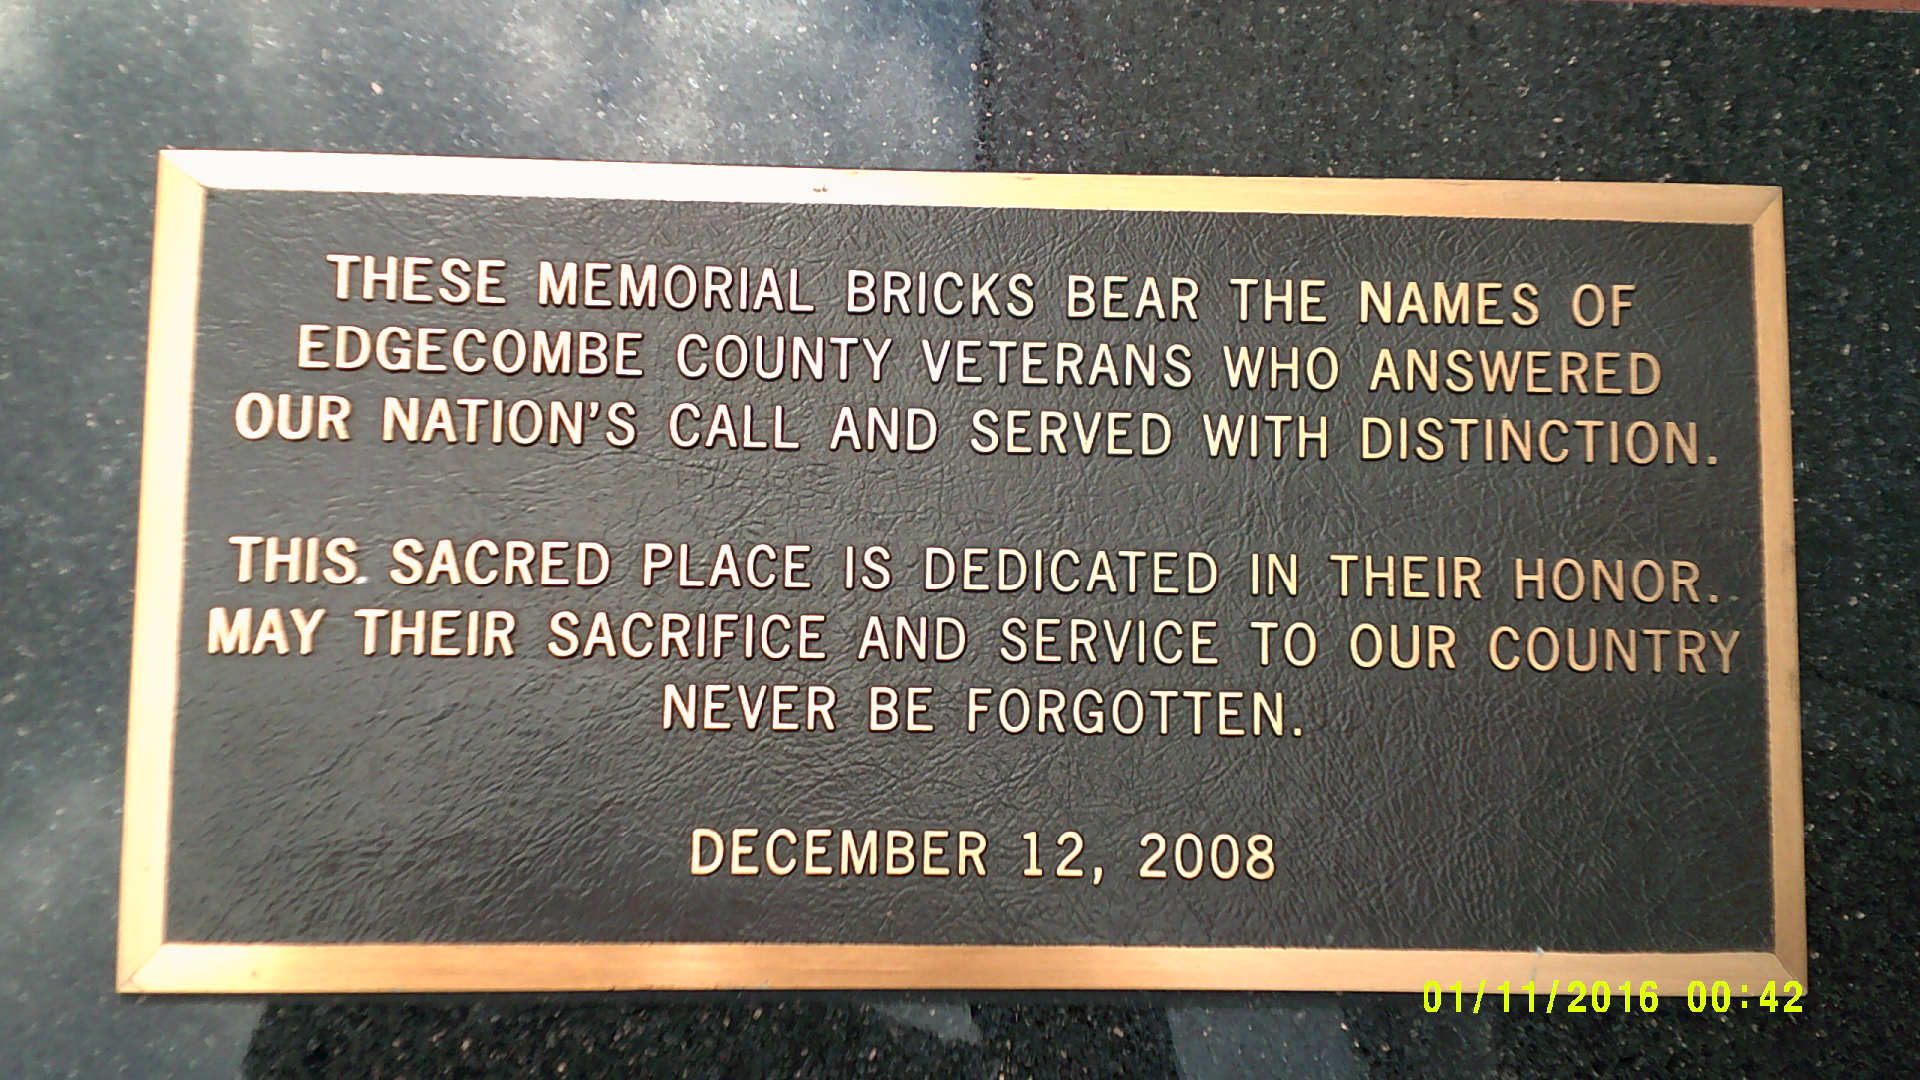 The plaque at the edge of the Memorial Bricks.